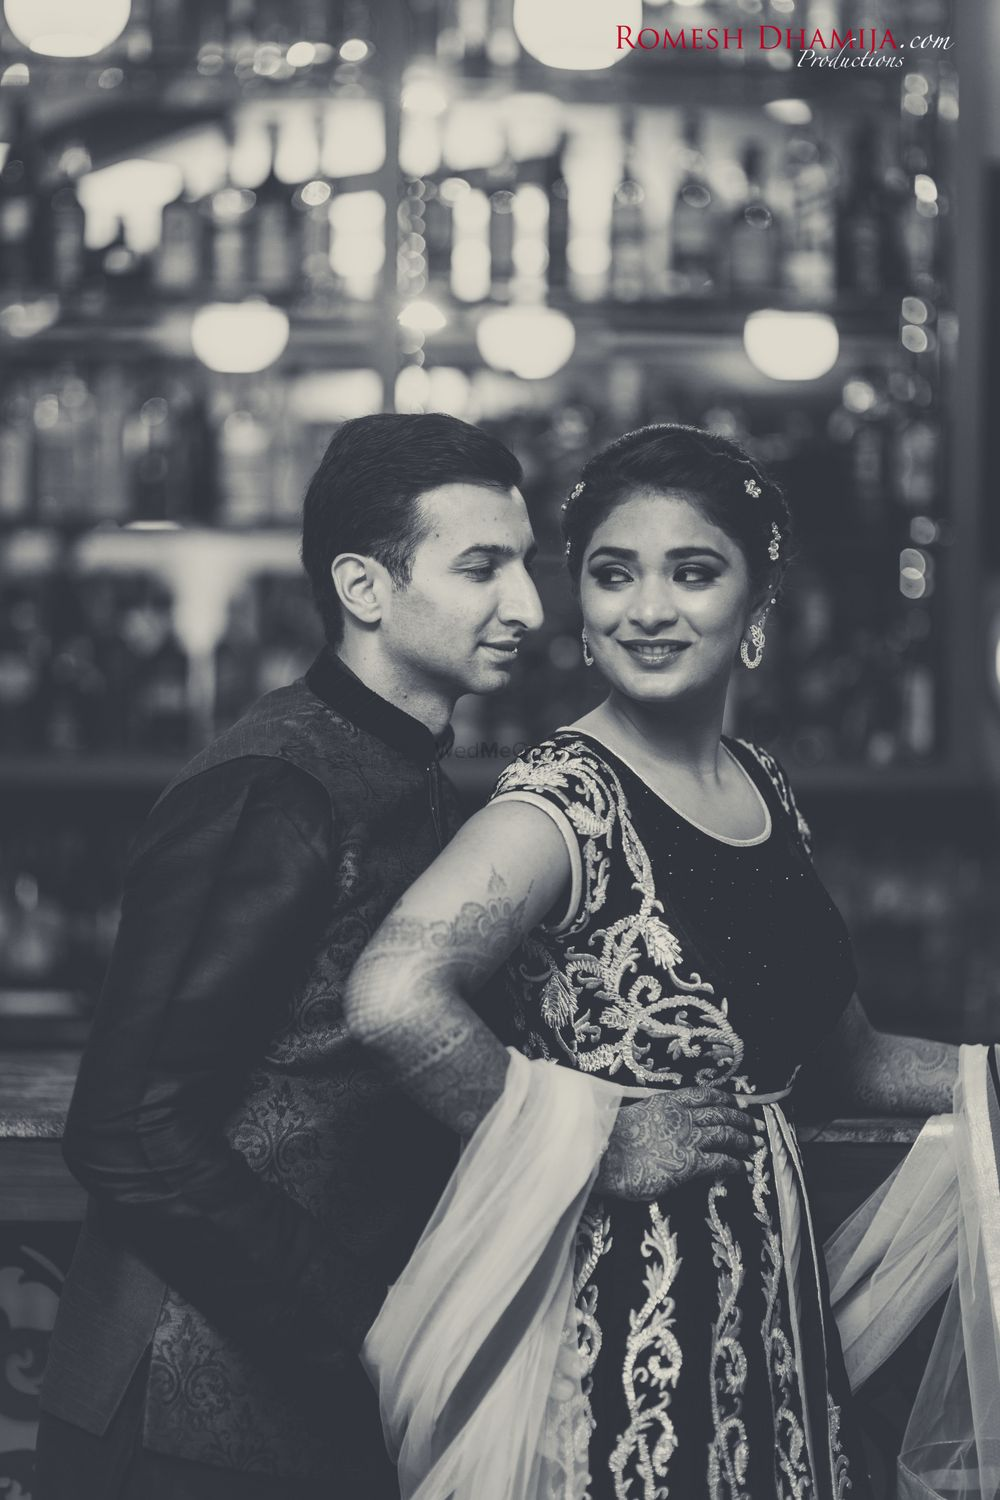 Photo From Neha & Shanoor - By Romesh Dhamija Photography